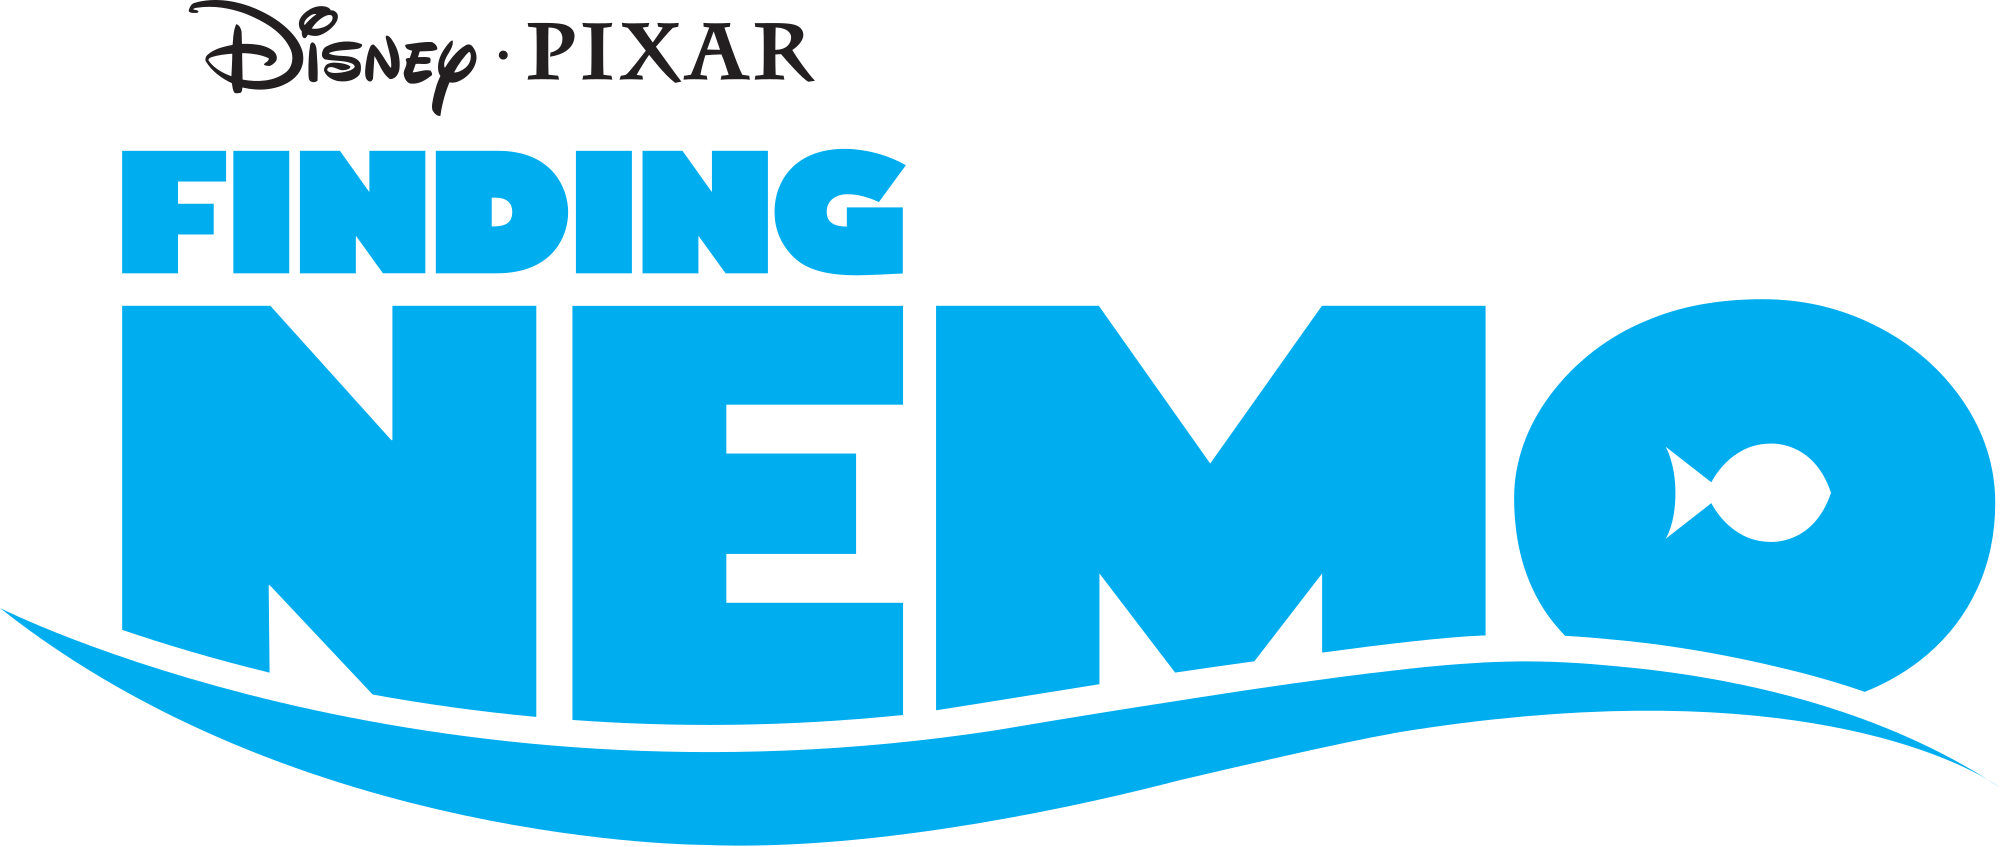 Finding dory title png. File nemo logo svg